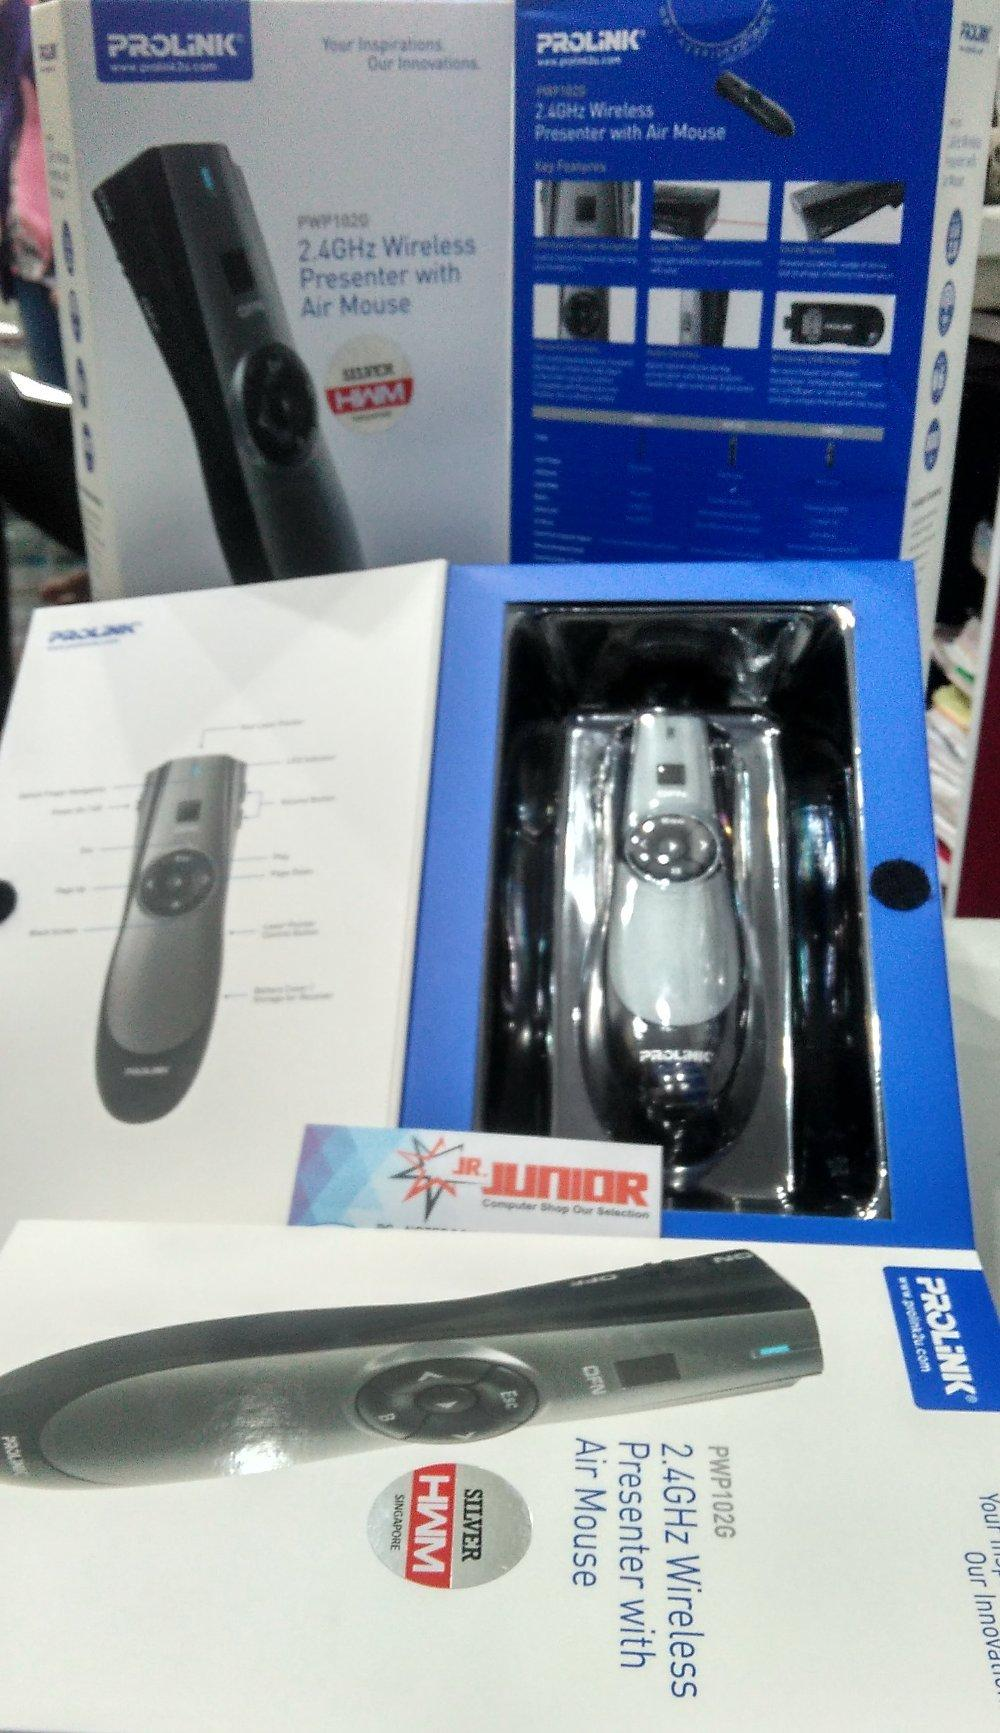 Harga Terbaru Mouse Wireless Murah Bandung November 2018 Paling Logitech M170 Ori Laser Pointer Prolink Pwp102g Presenter With Air